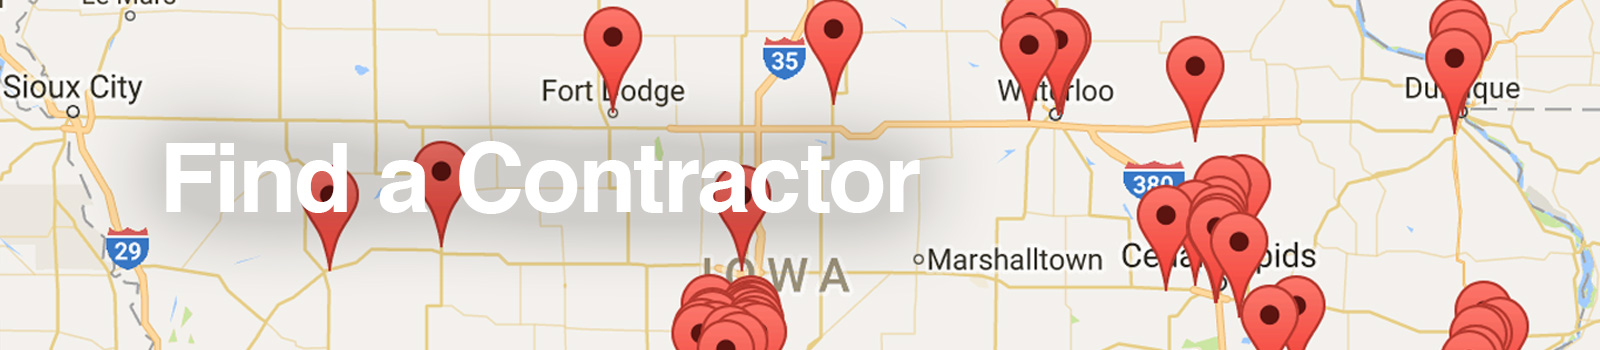 Find A Contractor Iowa Roofing Contractors Association